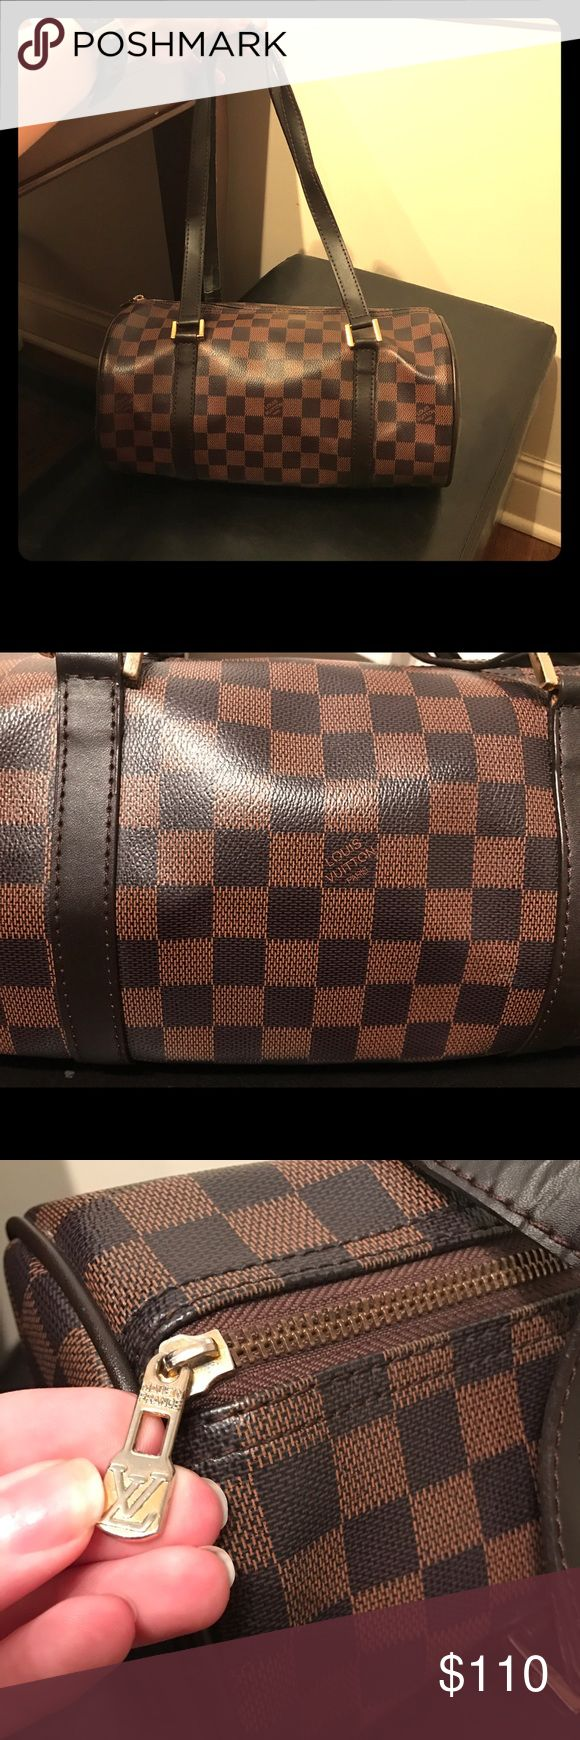 Louis Vuitton checkered bag 💥offer! Not sure if auth hints the price. Always get tons of compliments when wearing. Signs of wear on the straps, the leather is peeling. And some marks on the inside. Over all still in good shape! Make an offer 🥂 Louis Vuitton Bags